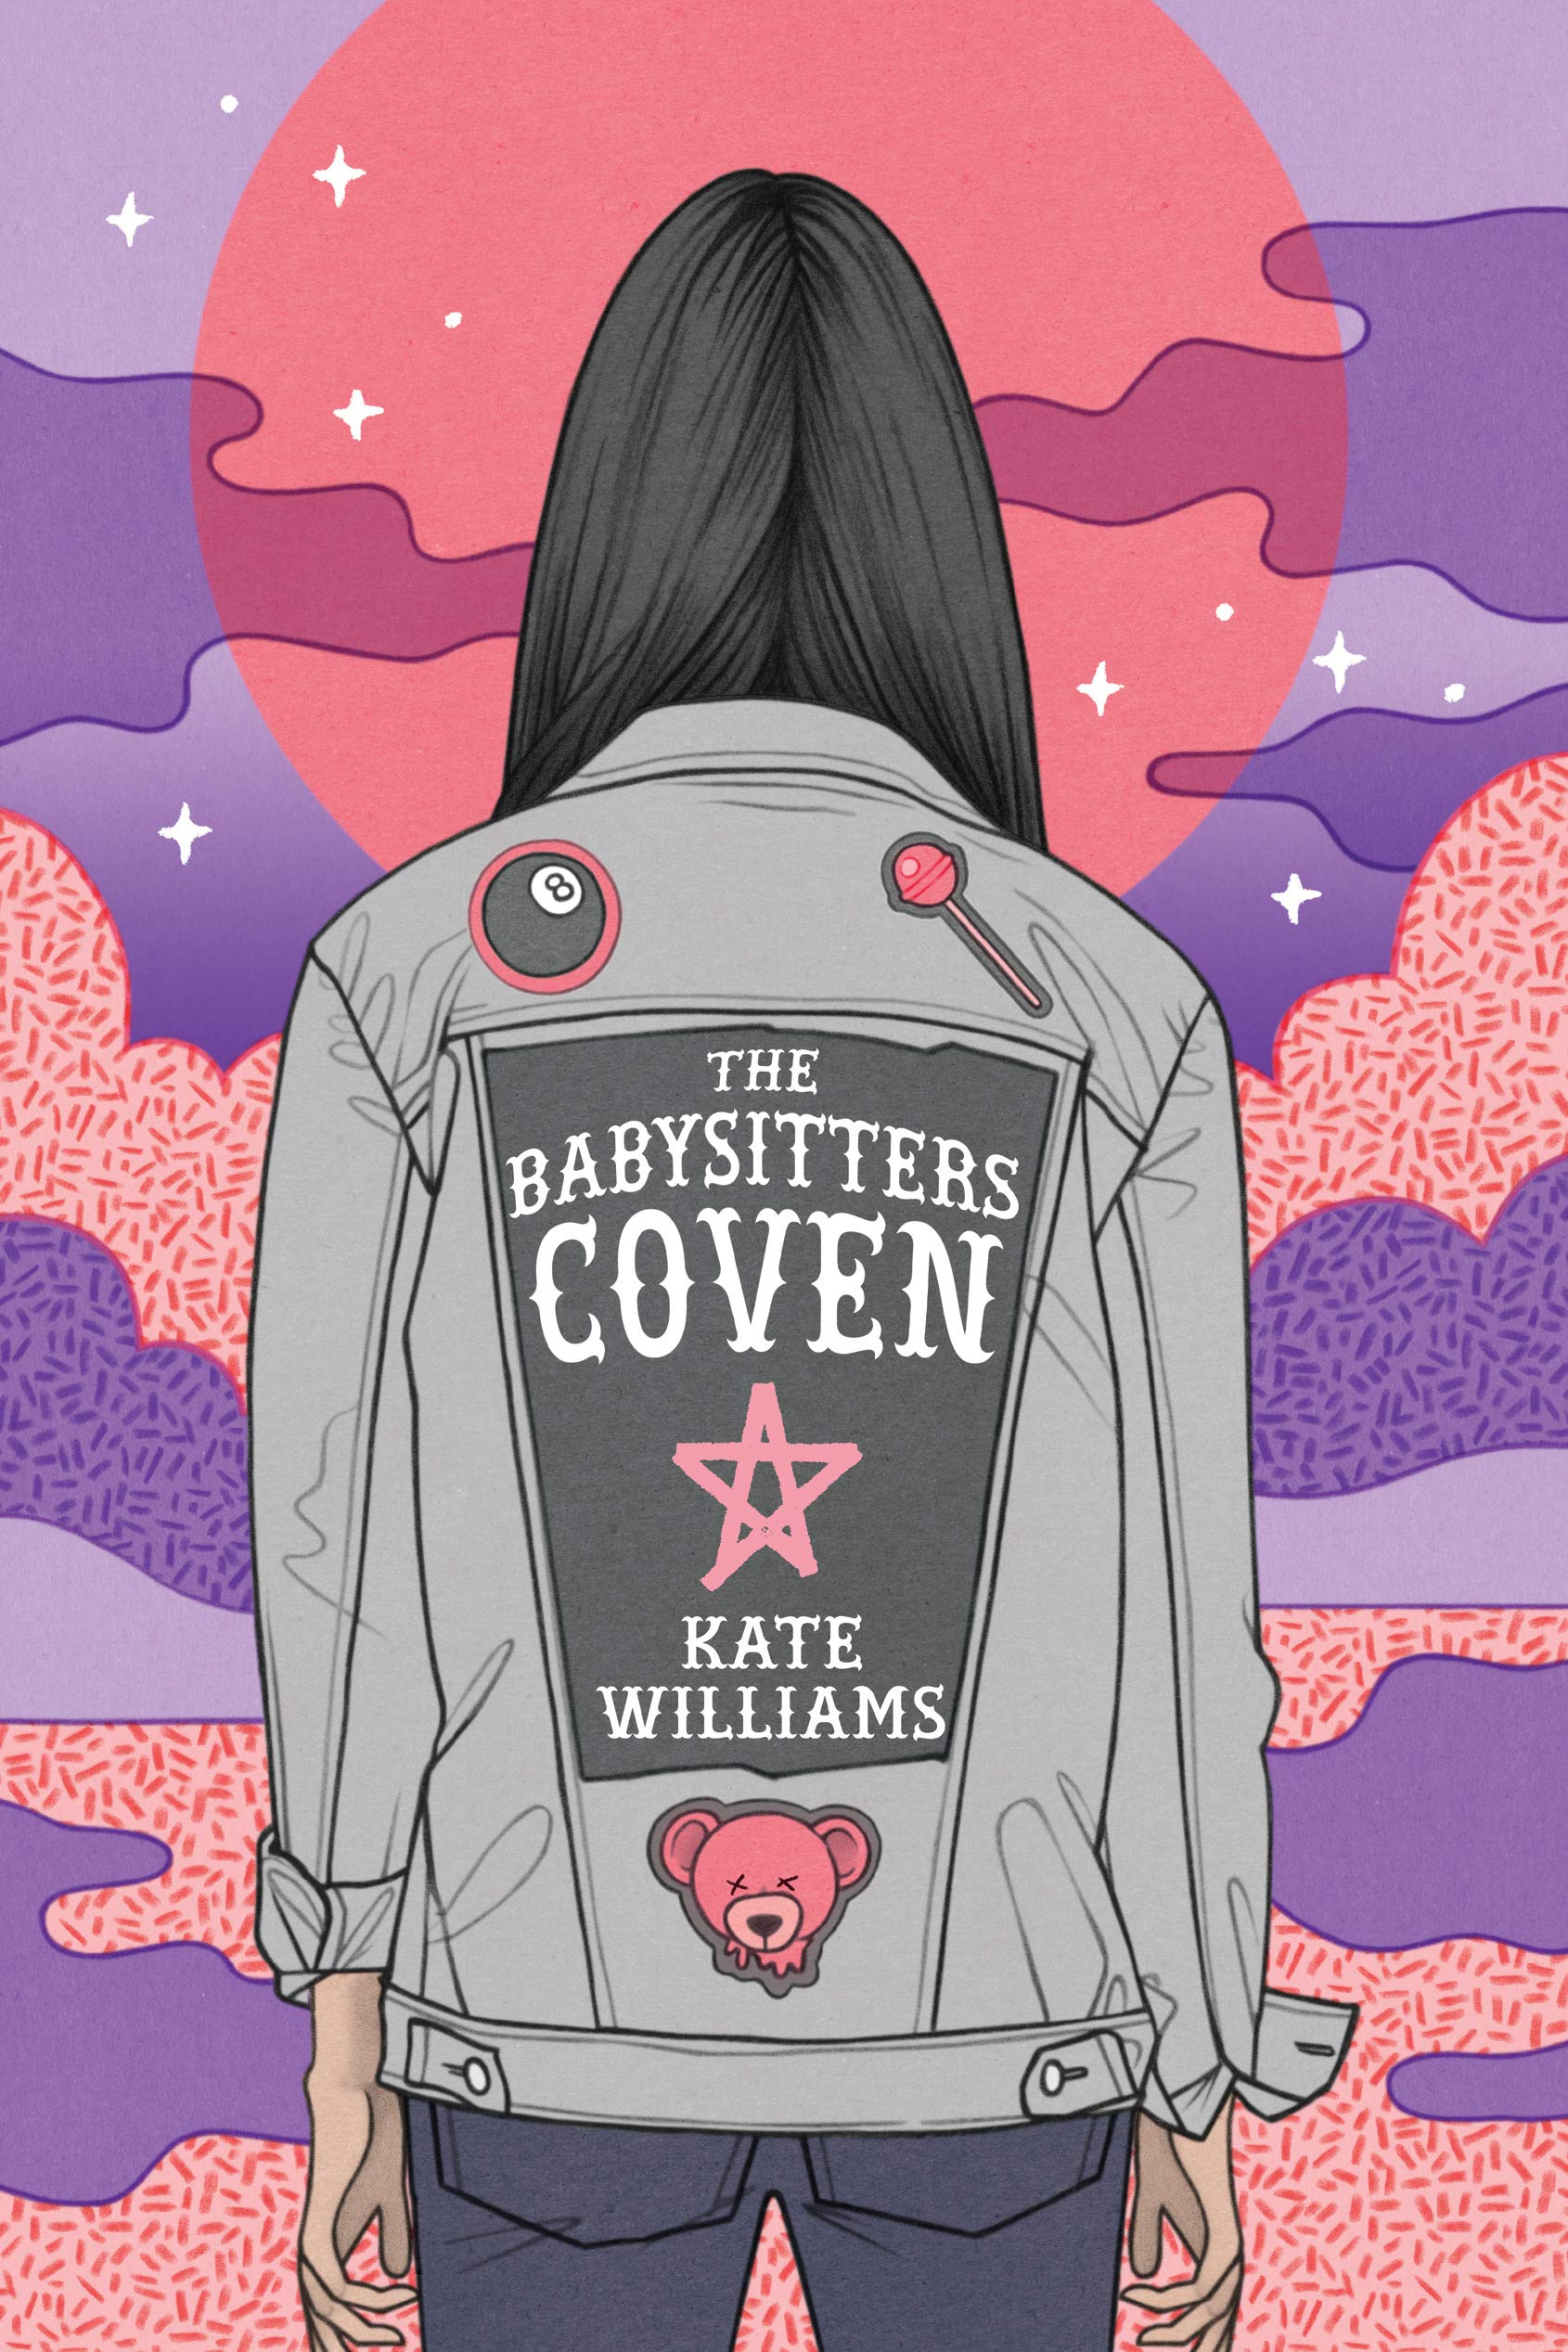 Cover of The Babysitters Coven, by Kate Williams.